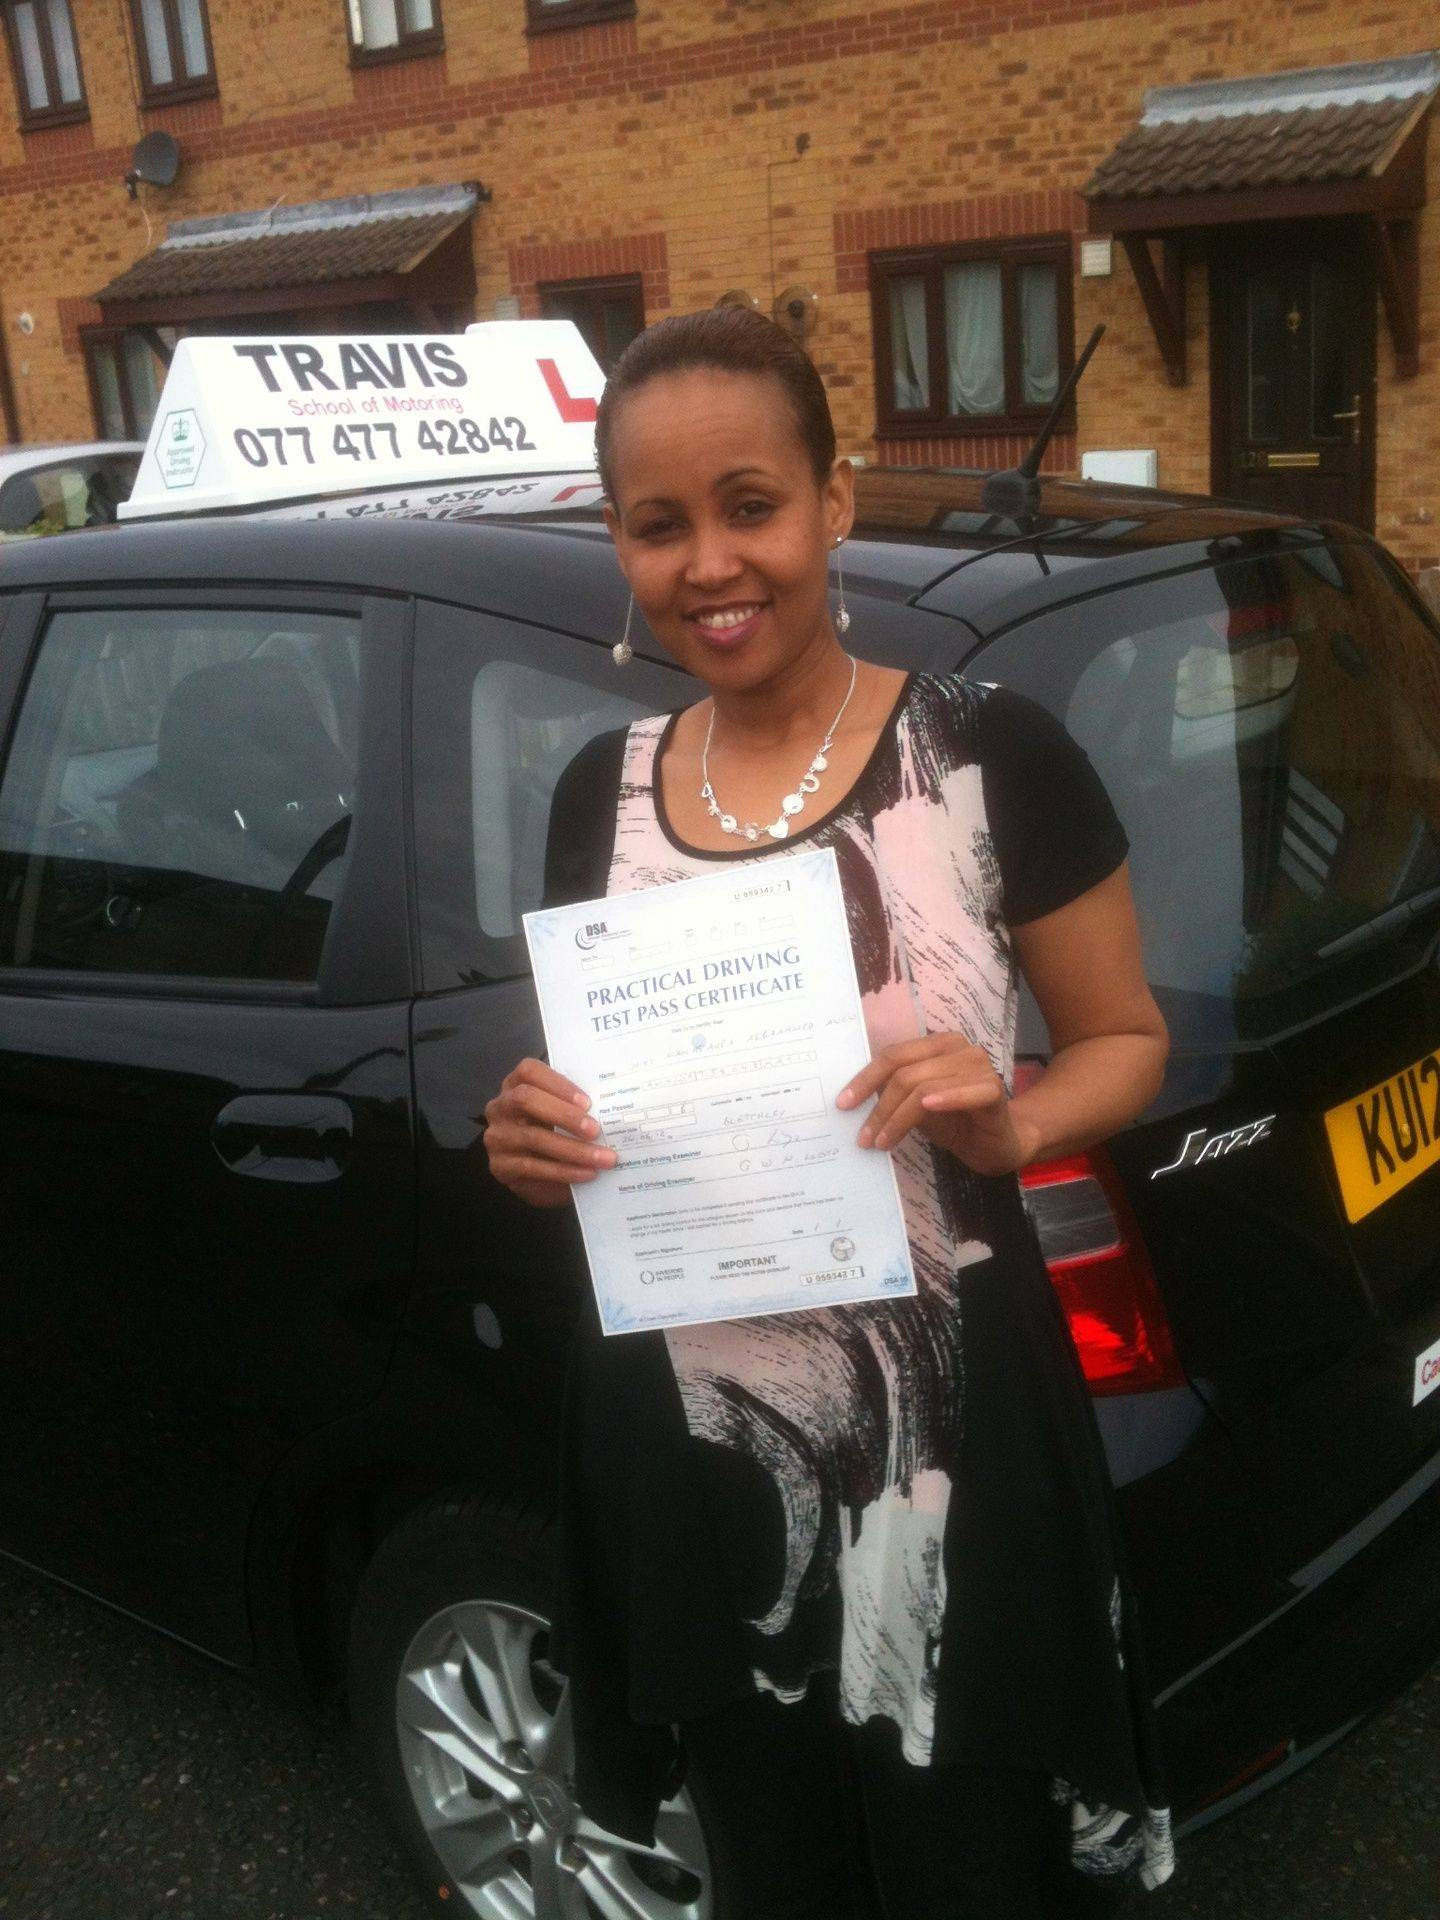 Passed after driving lessons in Milton Keynes